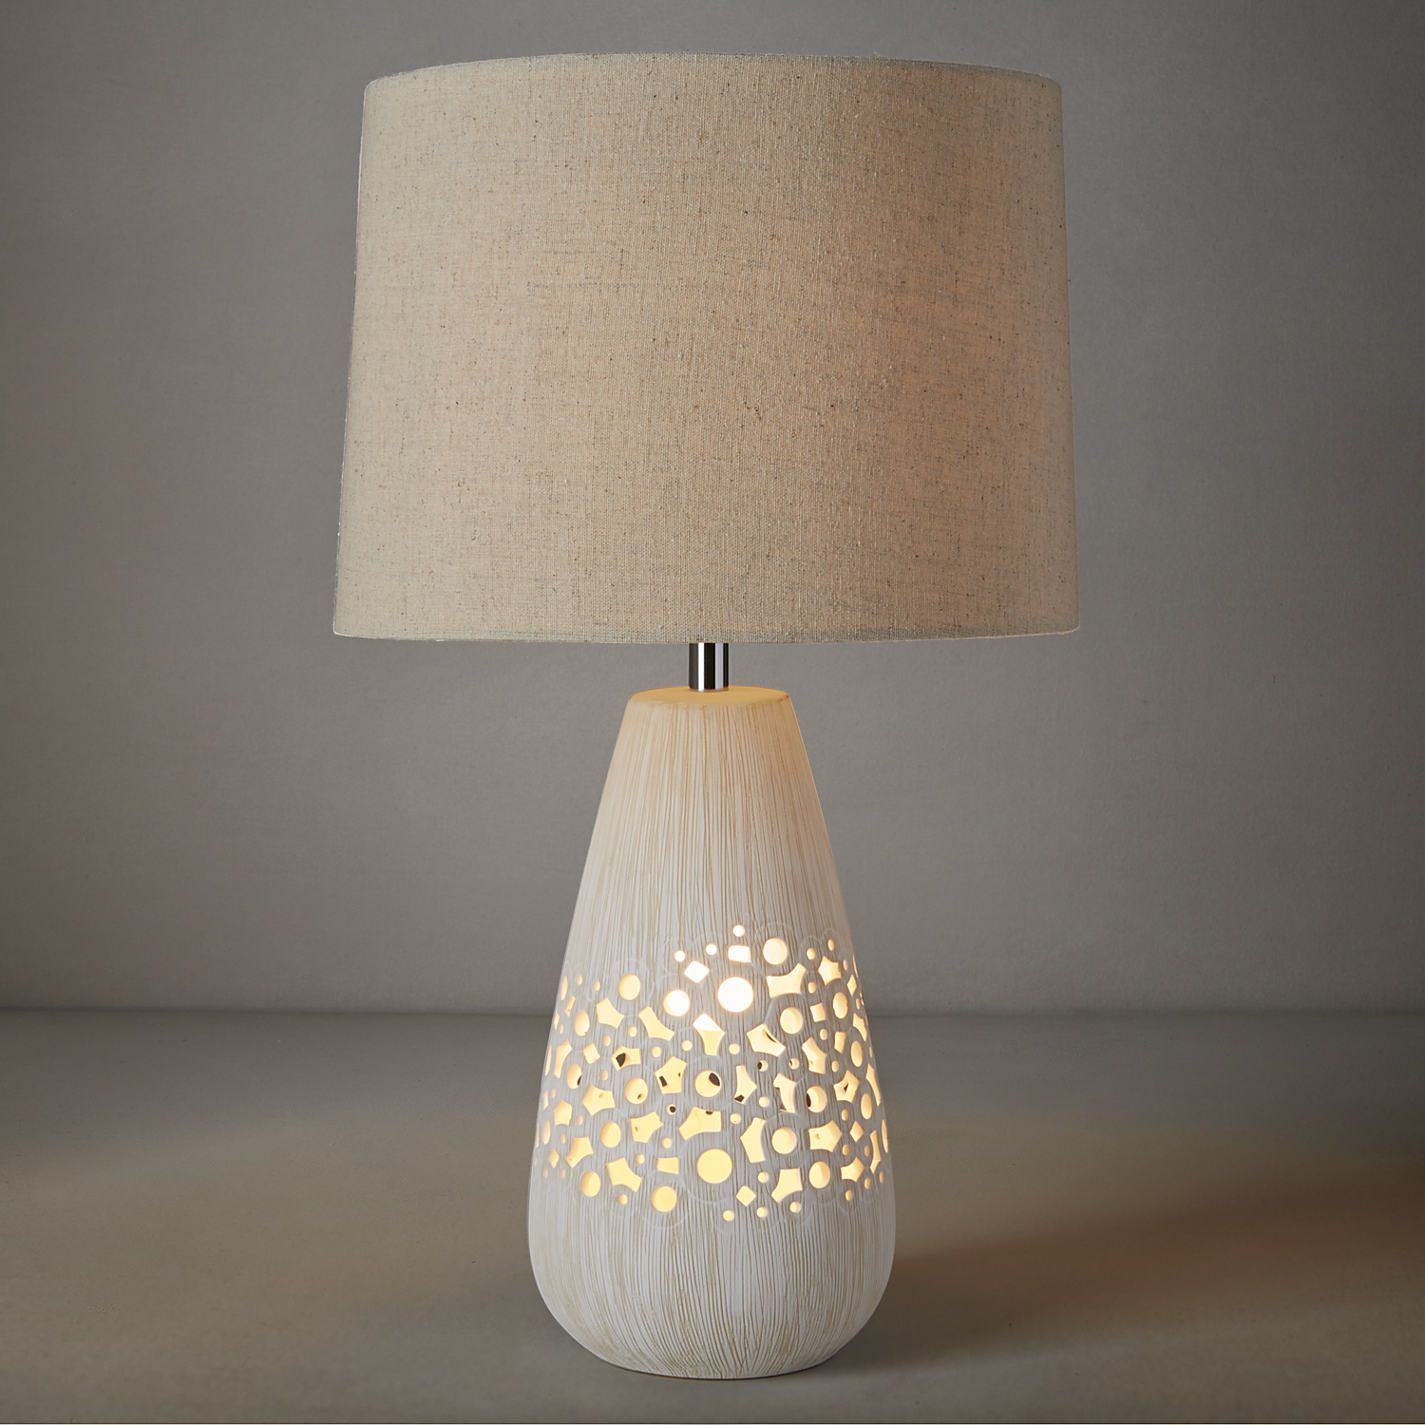 John Lewis Melissa Dual Lit Ceramic Table Lamp From Our Desk Lamps Range At